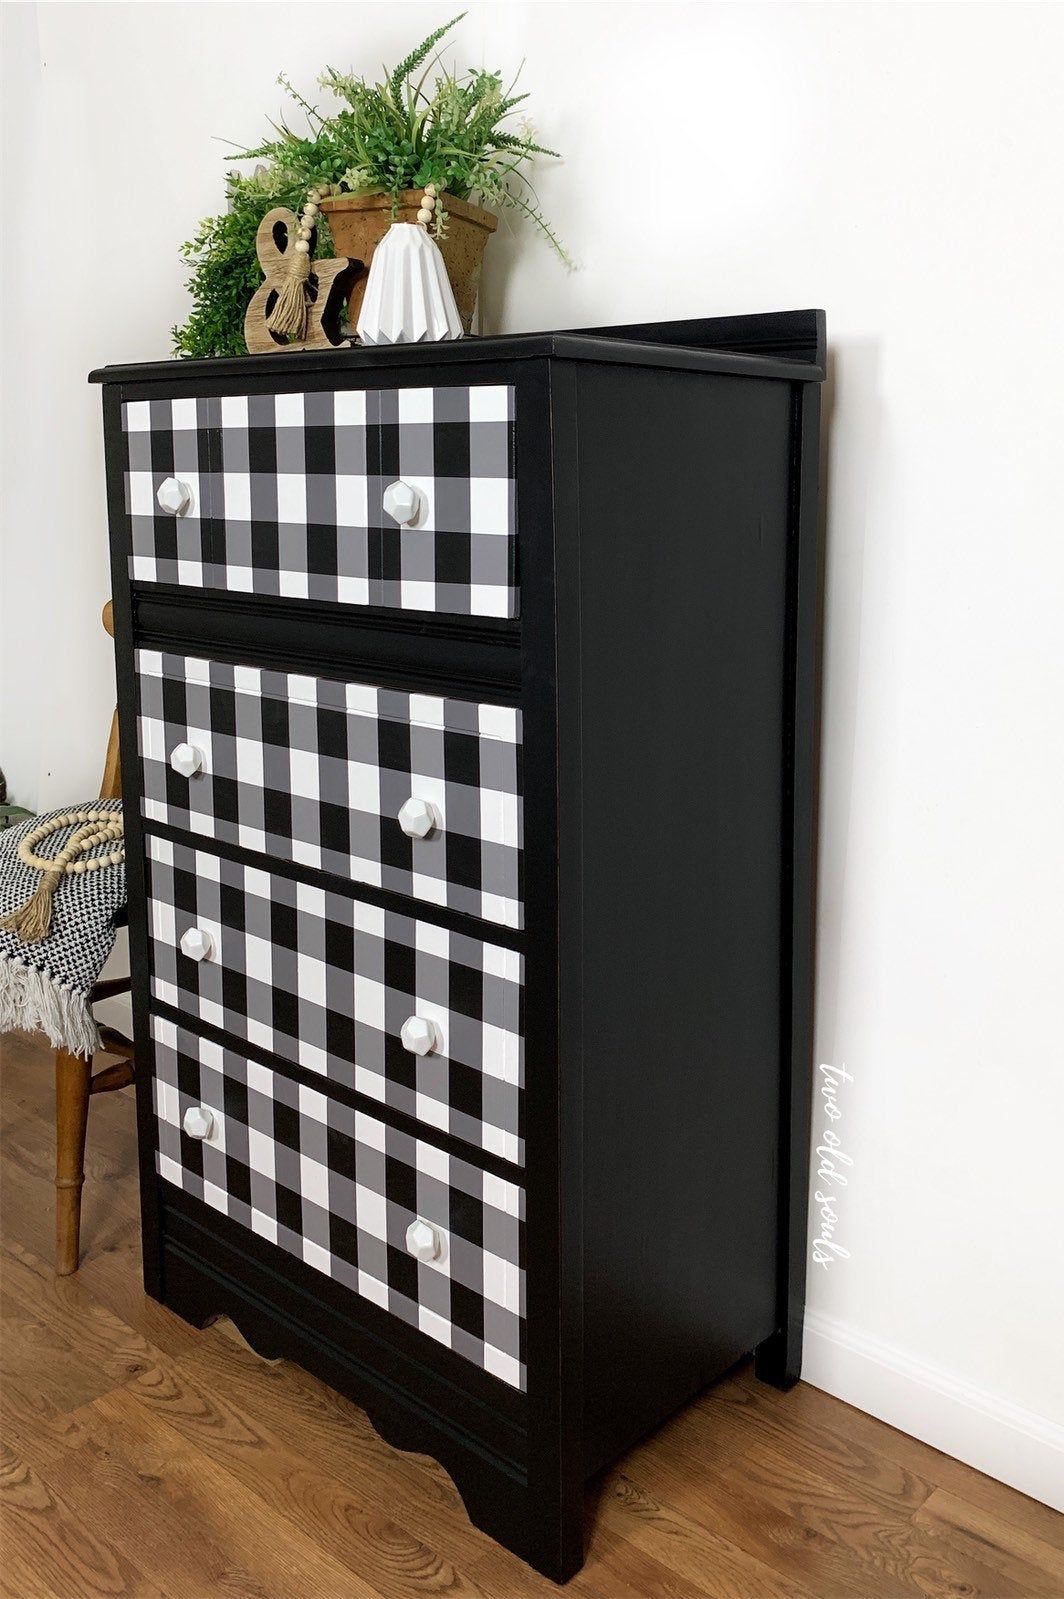 Two Old Souls Buffalo Plaid Petite Dresser Chest Of Drawers Etsy Furniture Handpainted Buffalo Vintage Chest Of Drawers Furniture Master Bedroom Furniture